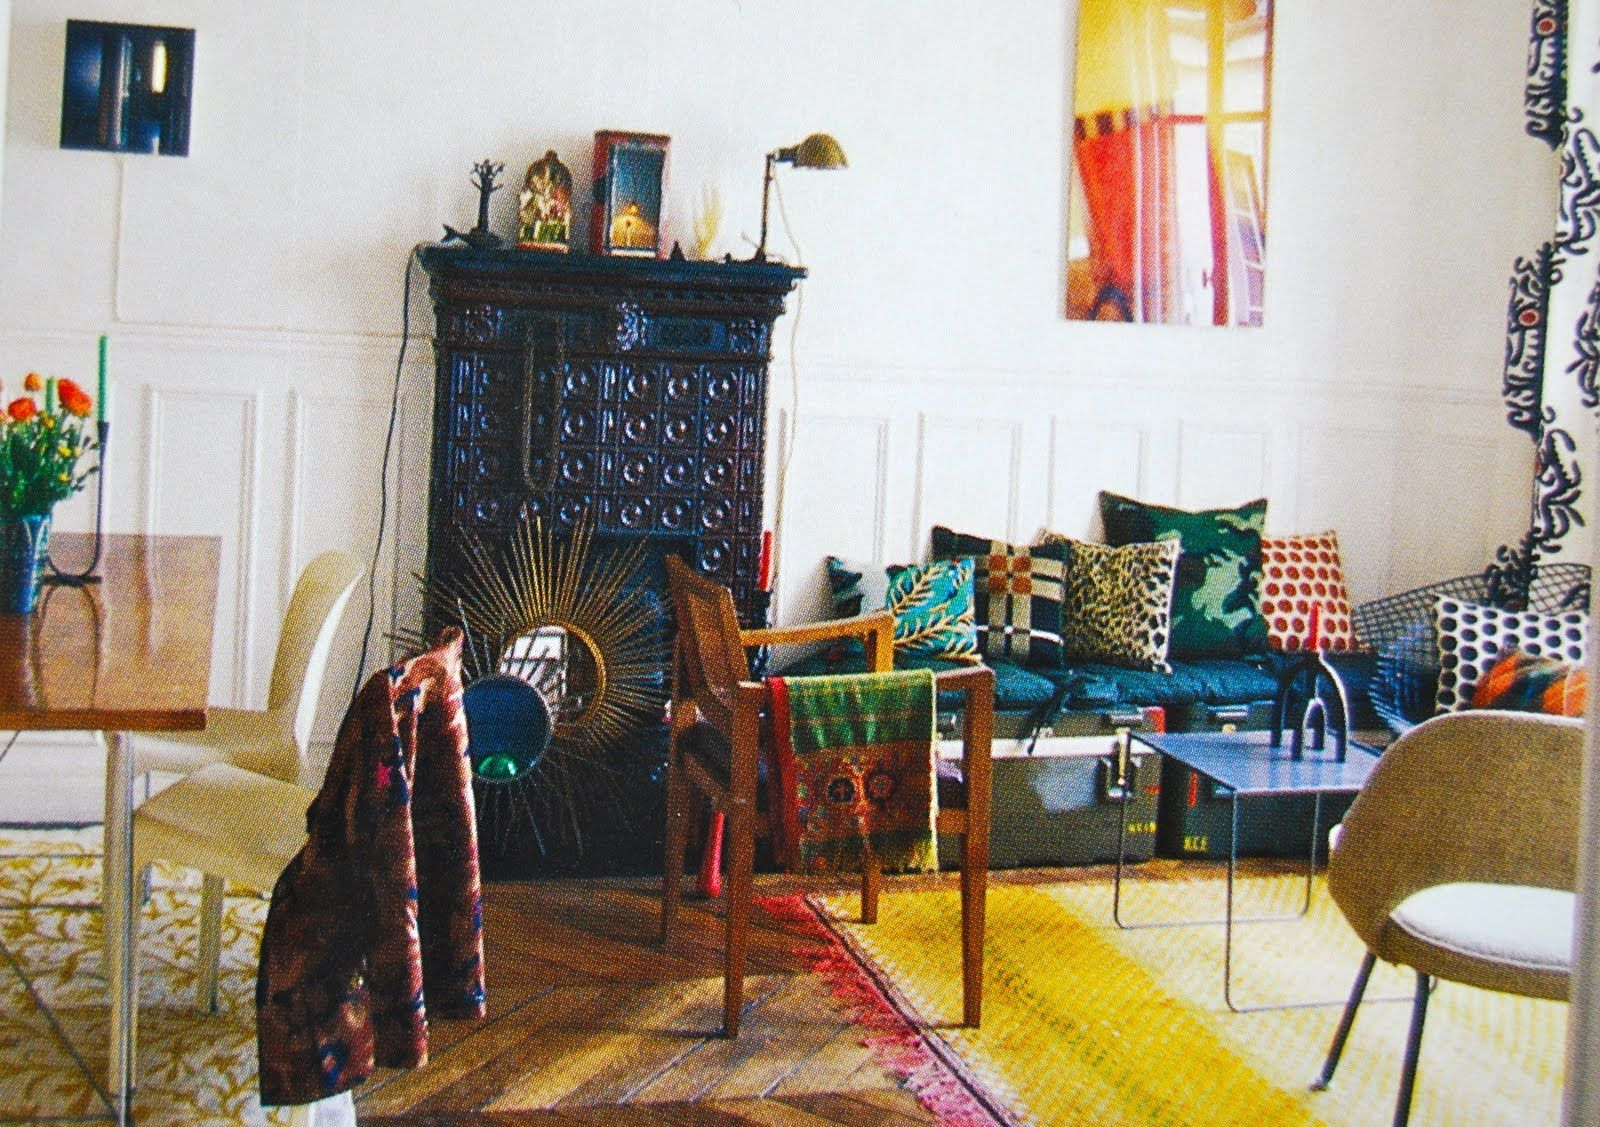 home of french textile designer Gabrielle Soyer